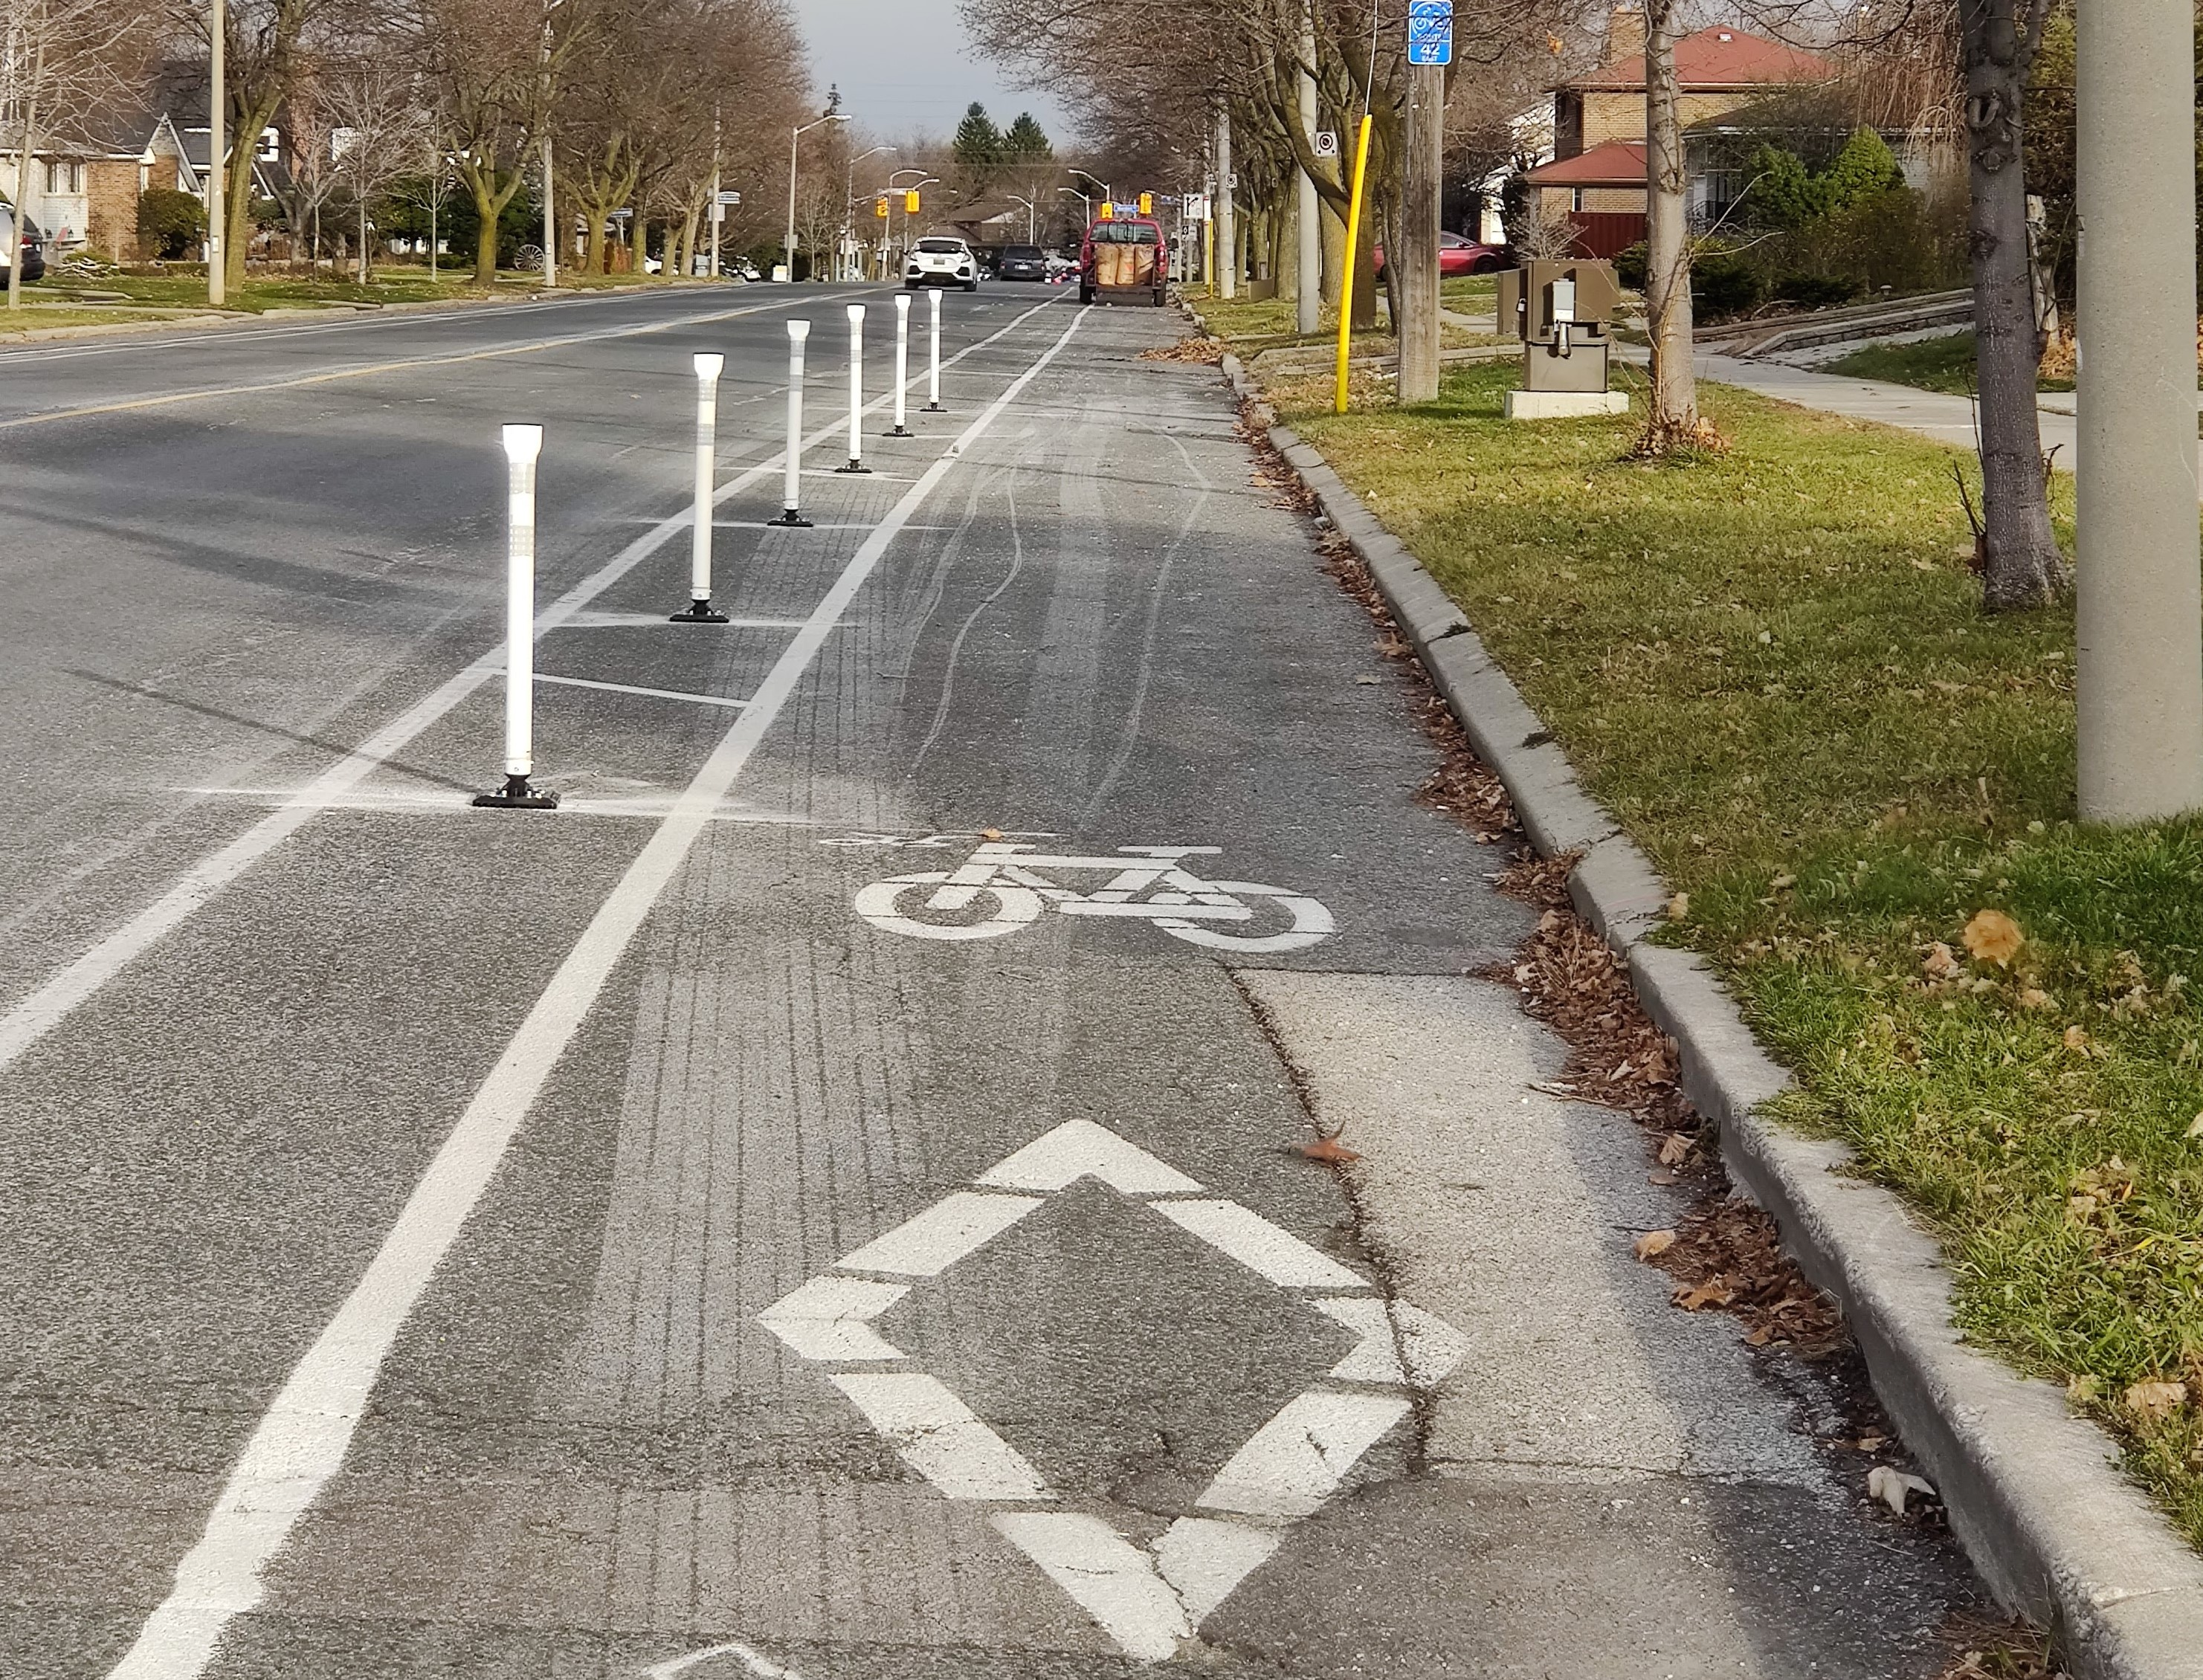 Flexi-posts line a bike lane. In the distance, after the flexi-posts end, a vehicle is parked in the bike lane.